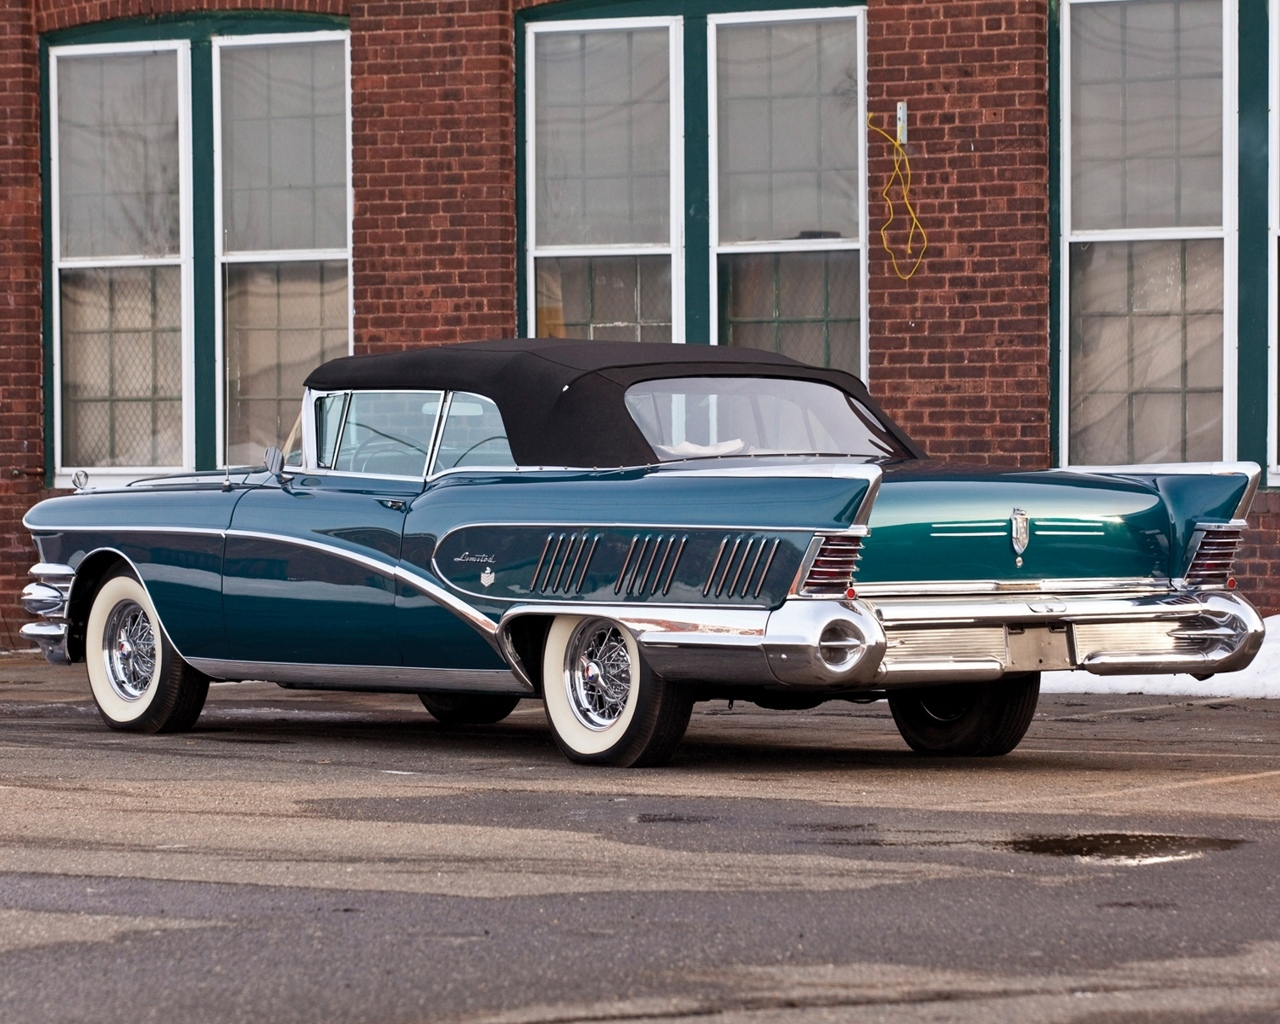 Wallpaper Amazing Convertible Cars Hd Wallpapers 2012 American Classic Cars Wallpapers